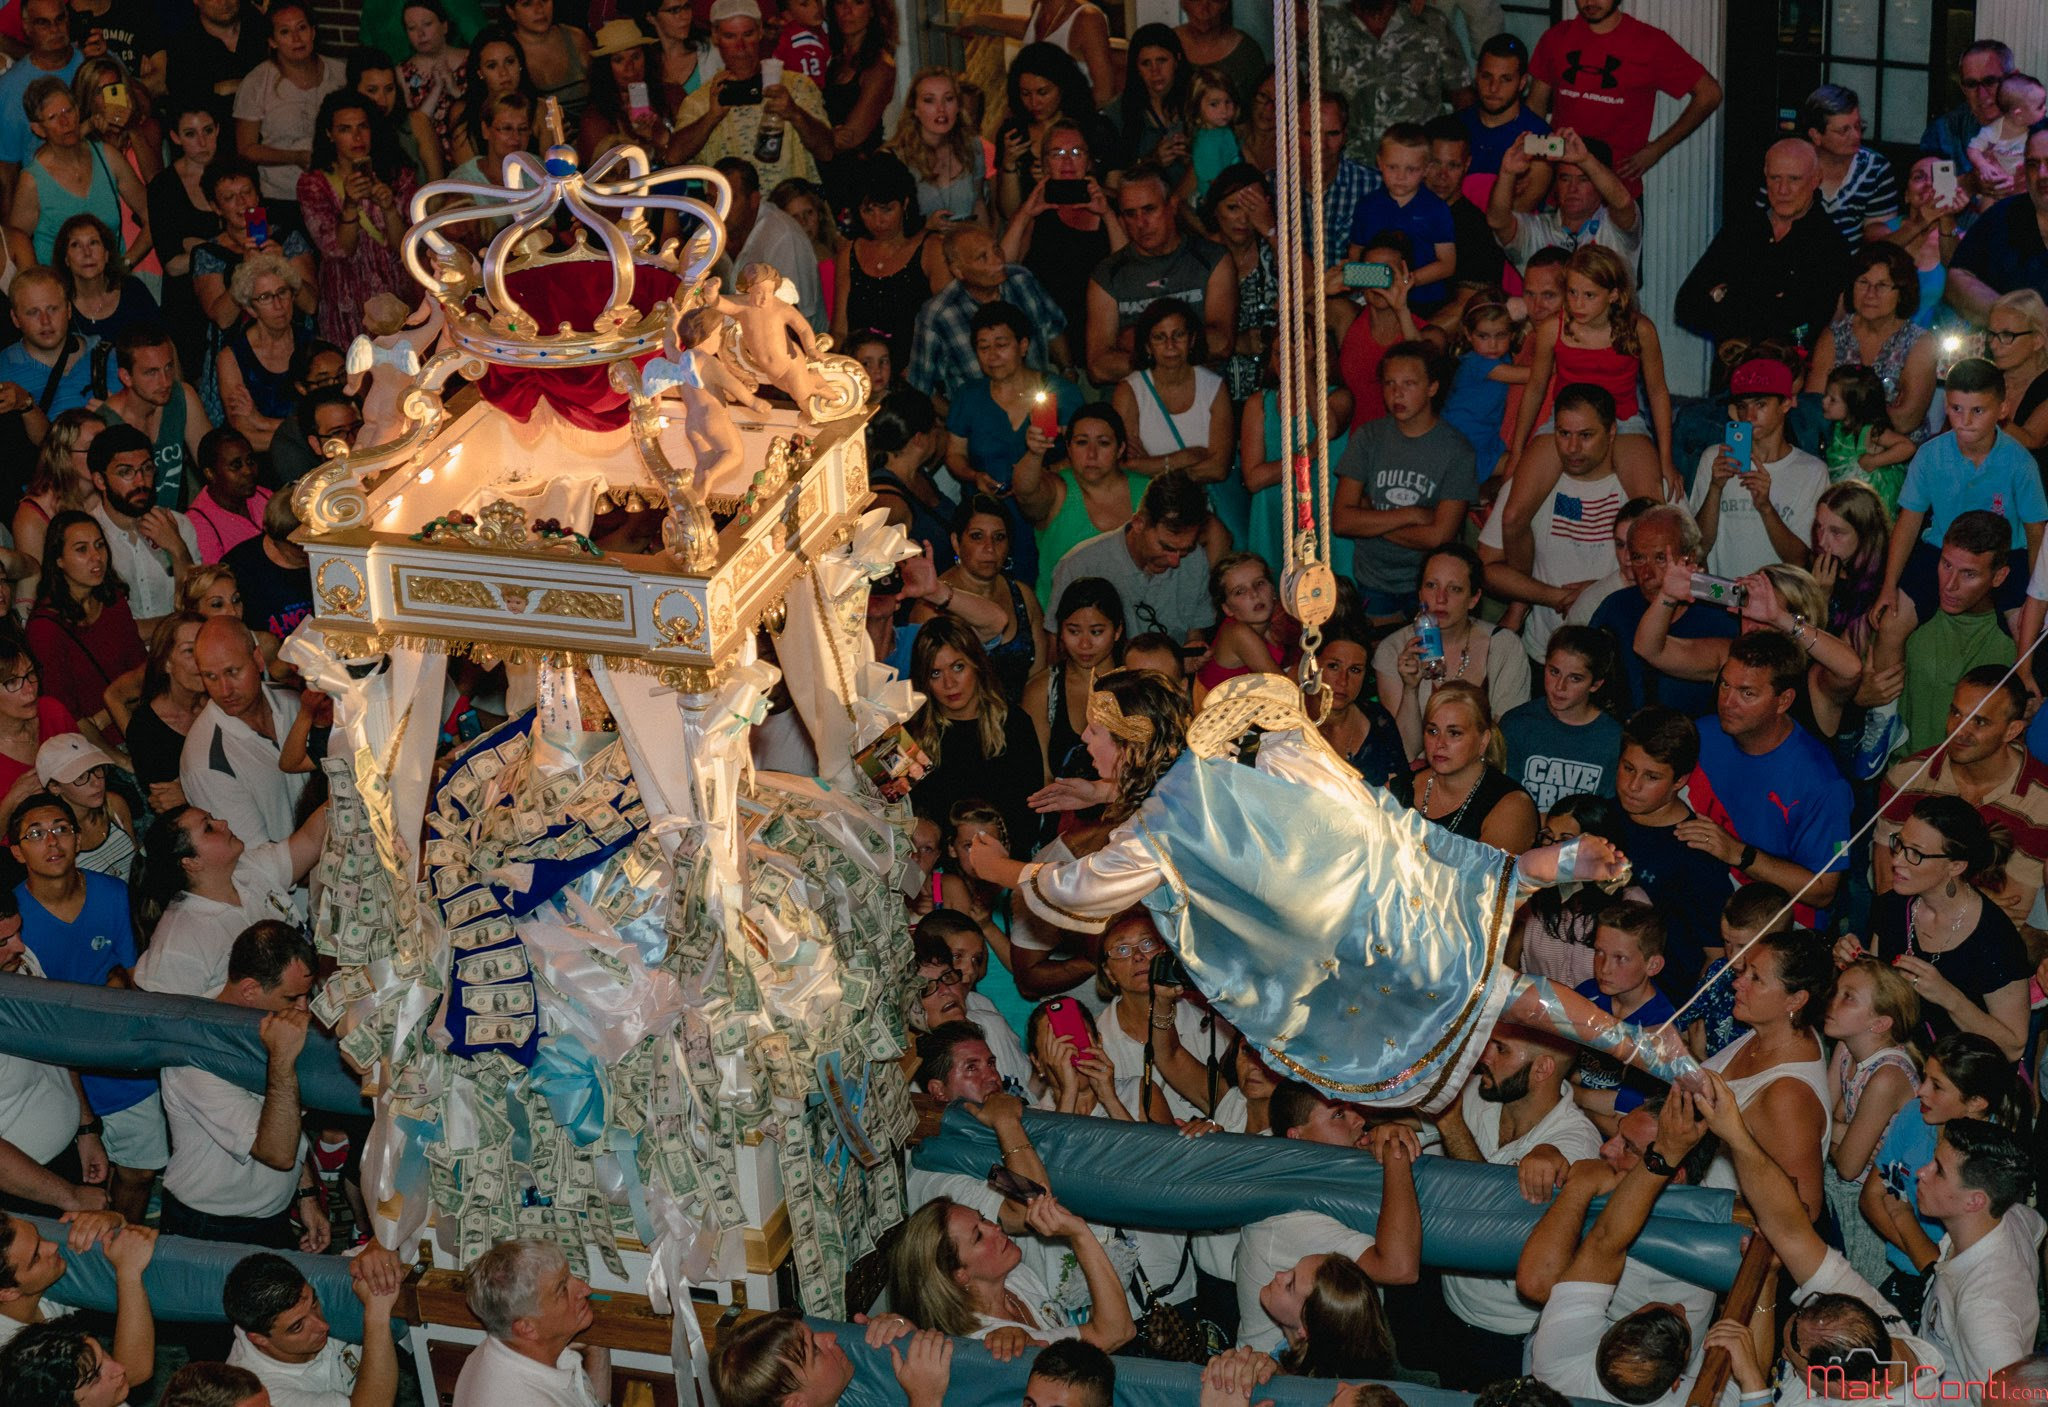 Video: Flight of the Angel at 2016 Fisherman's Feast